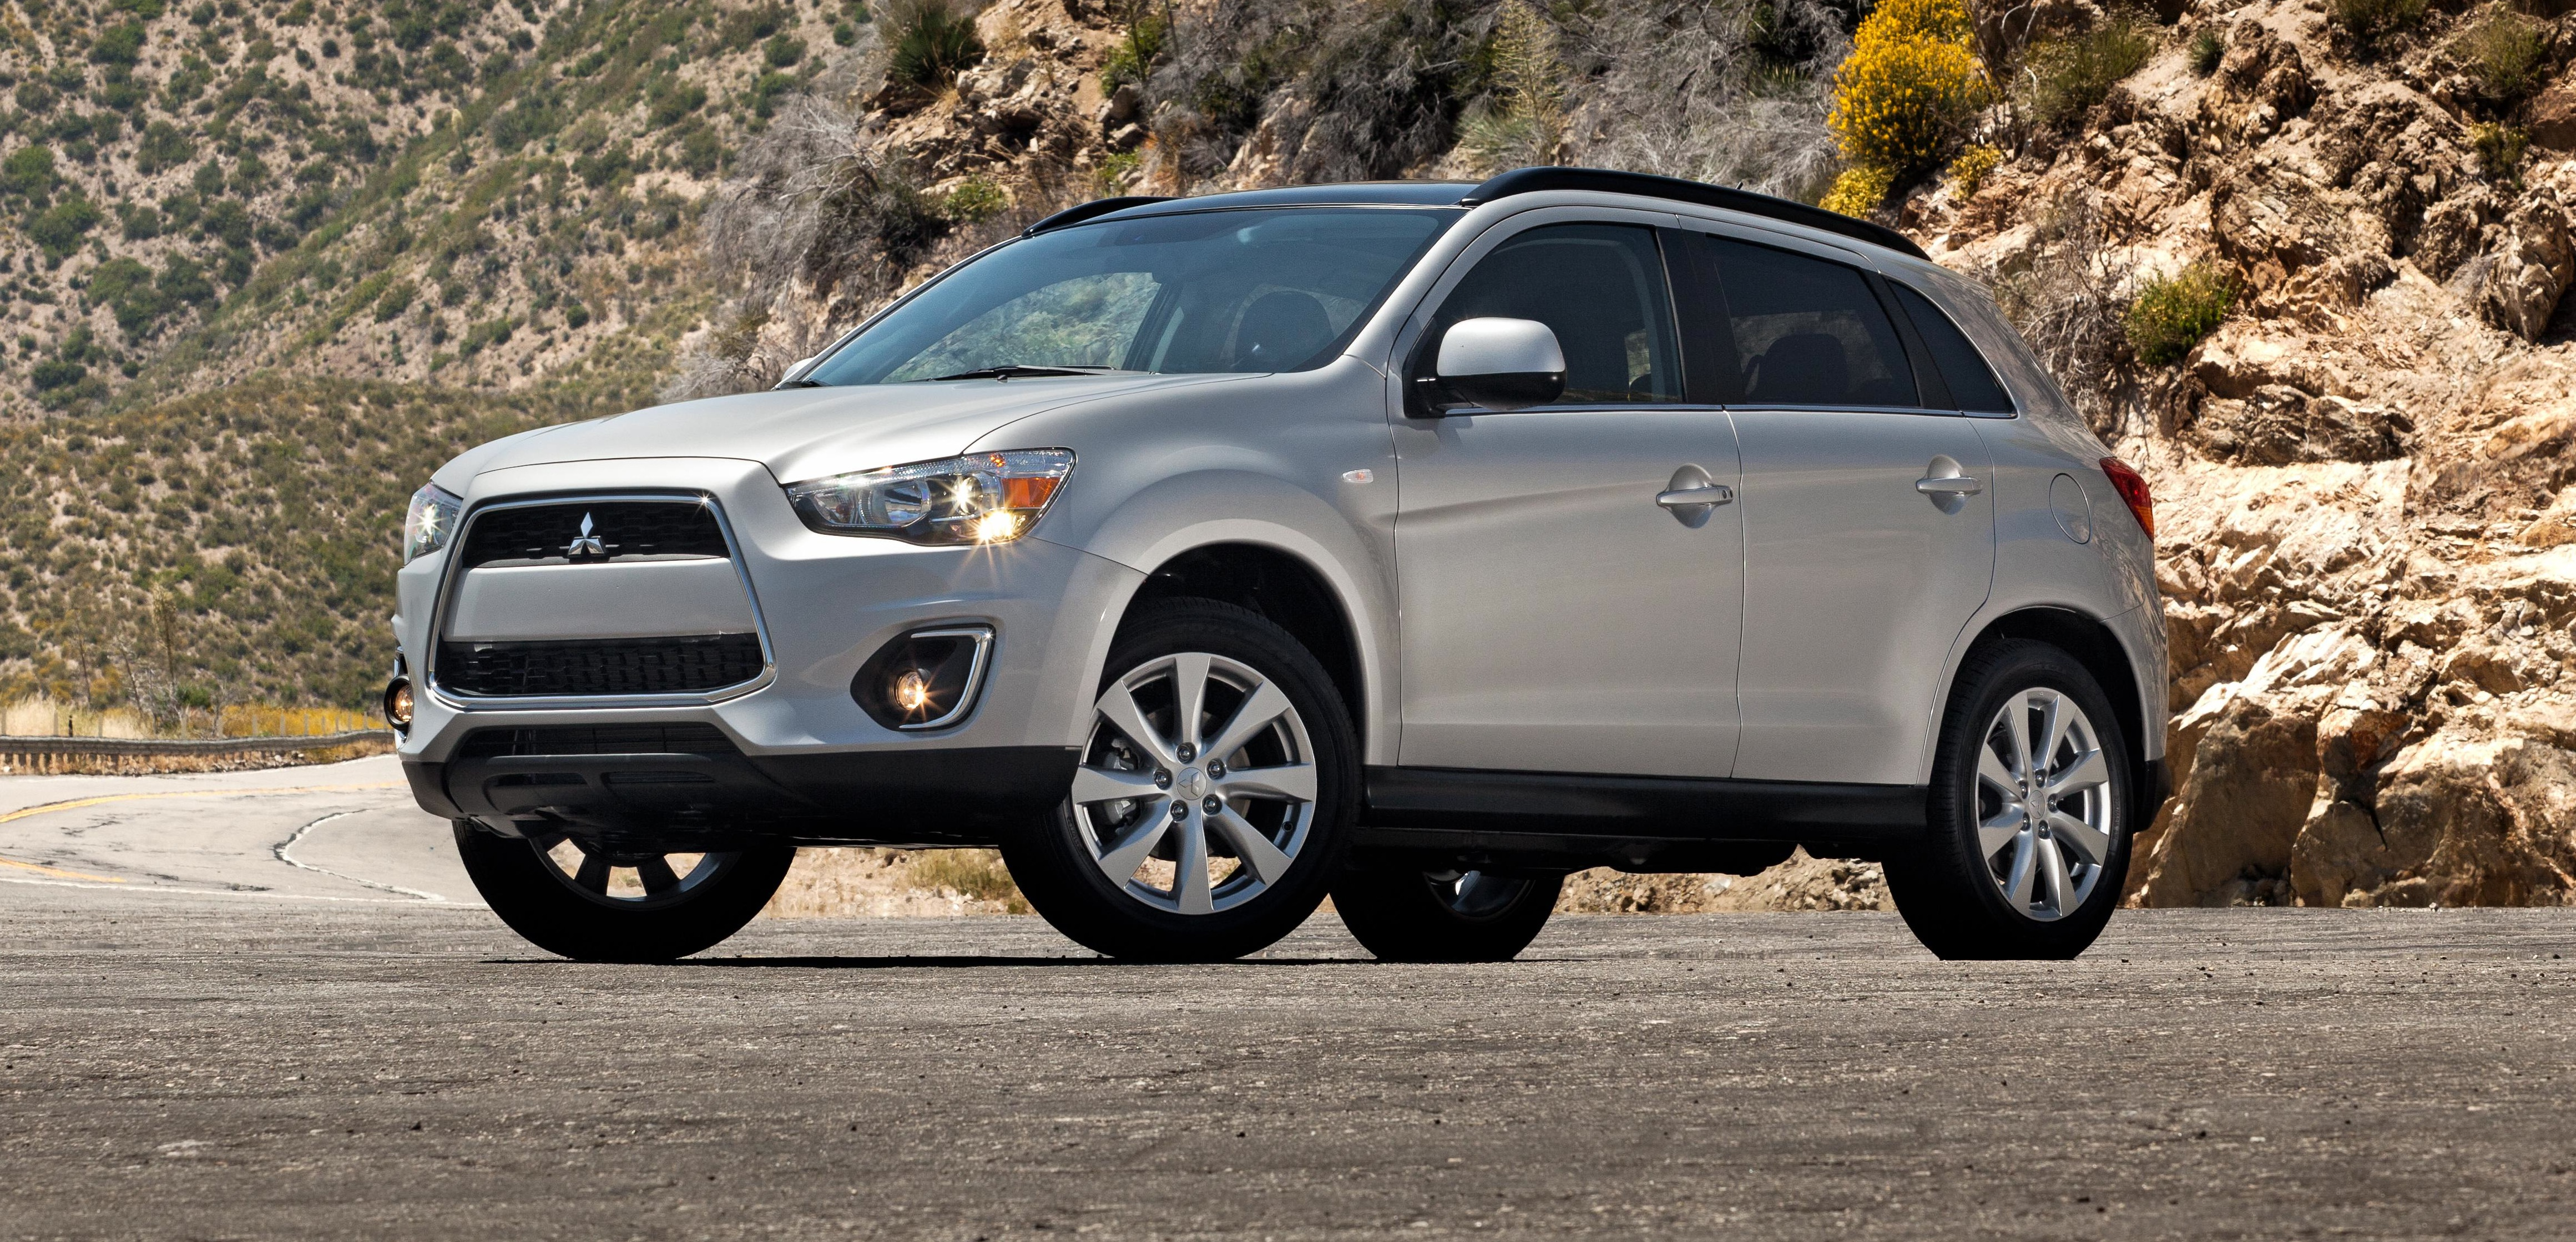 2014 mitsubishi outlander sport review value priced compact crossover carnichiwa. Black Bedroom Furniture Sets. Home Design Ideas